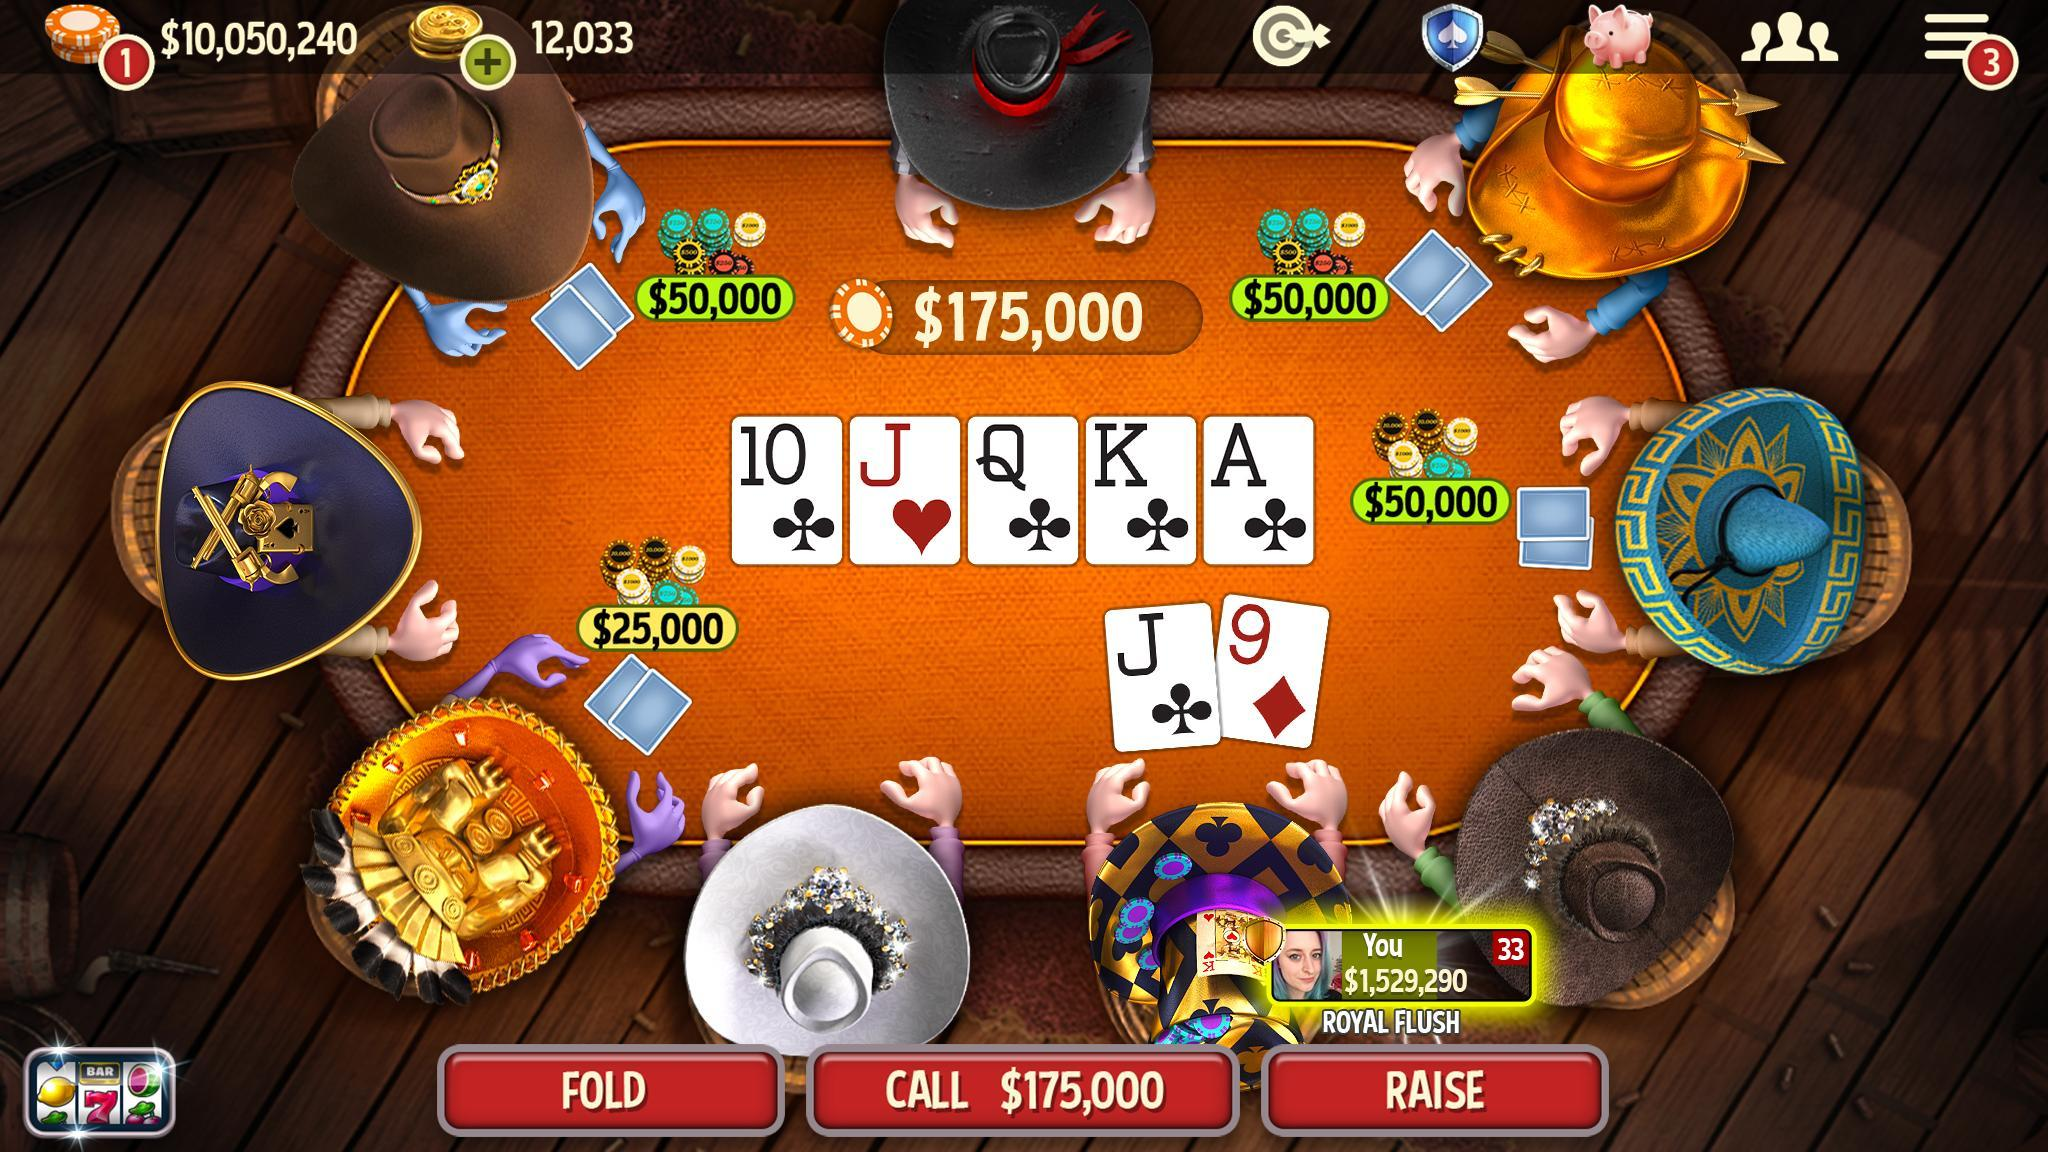 Governor of Poker 3 - Texas Holdem With Friends 6.9.1 Screenshot 7